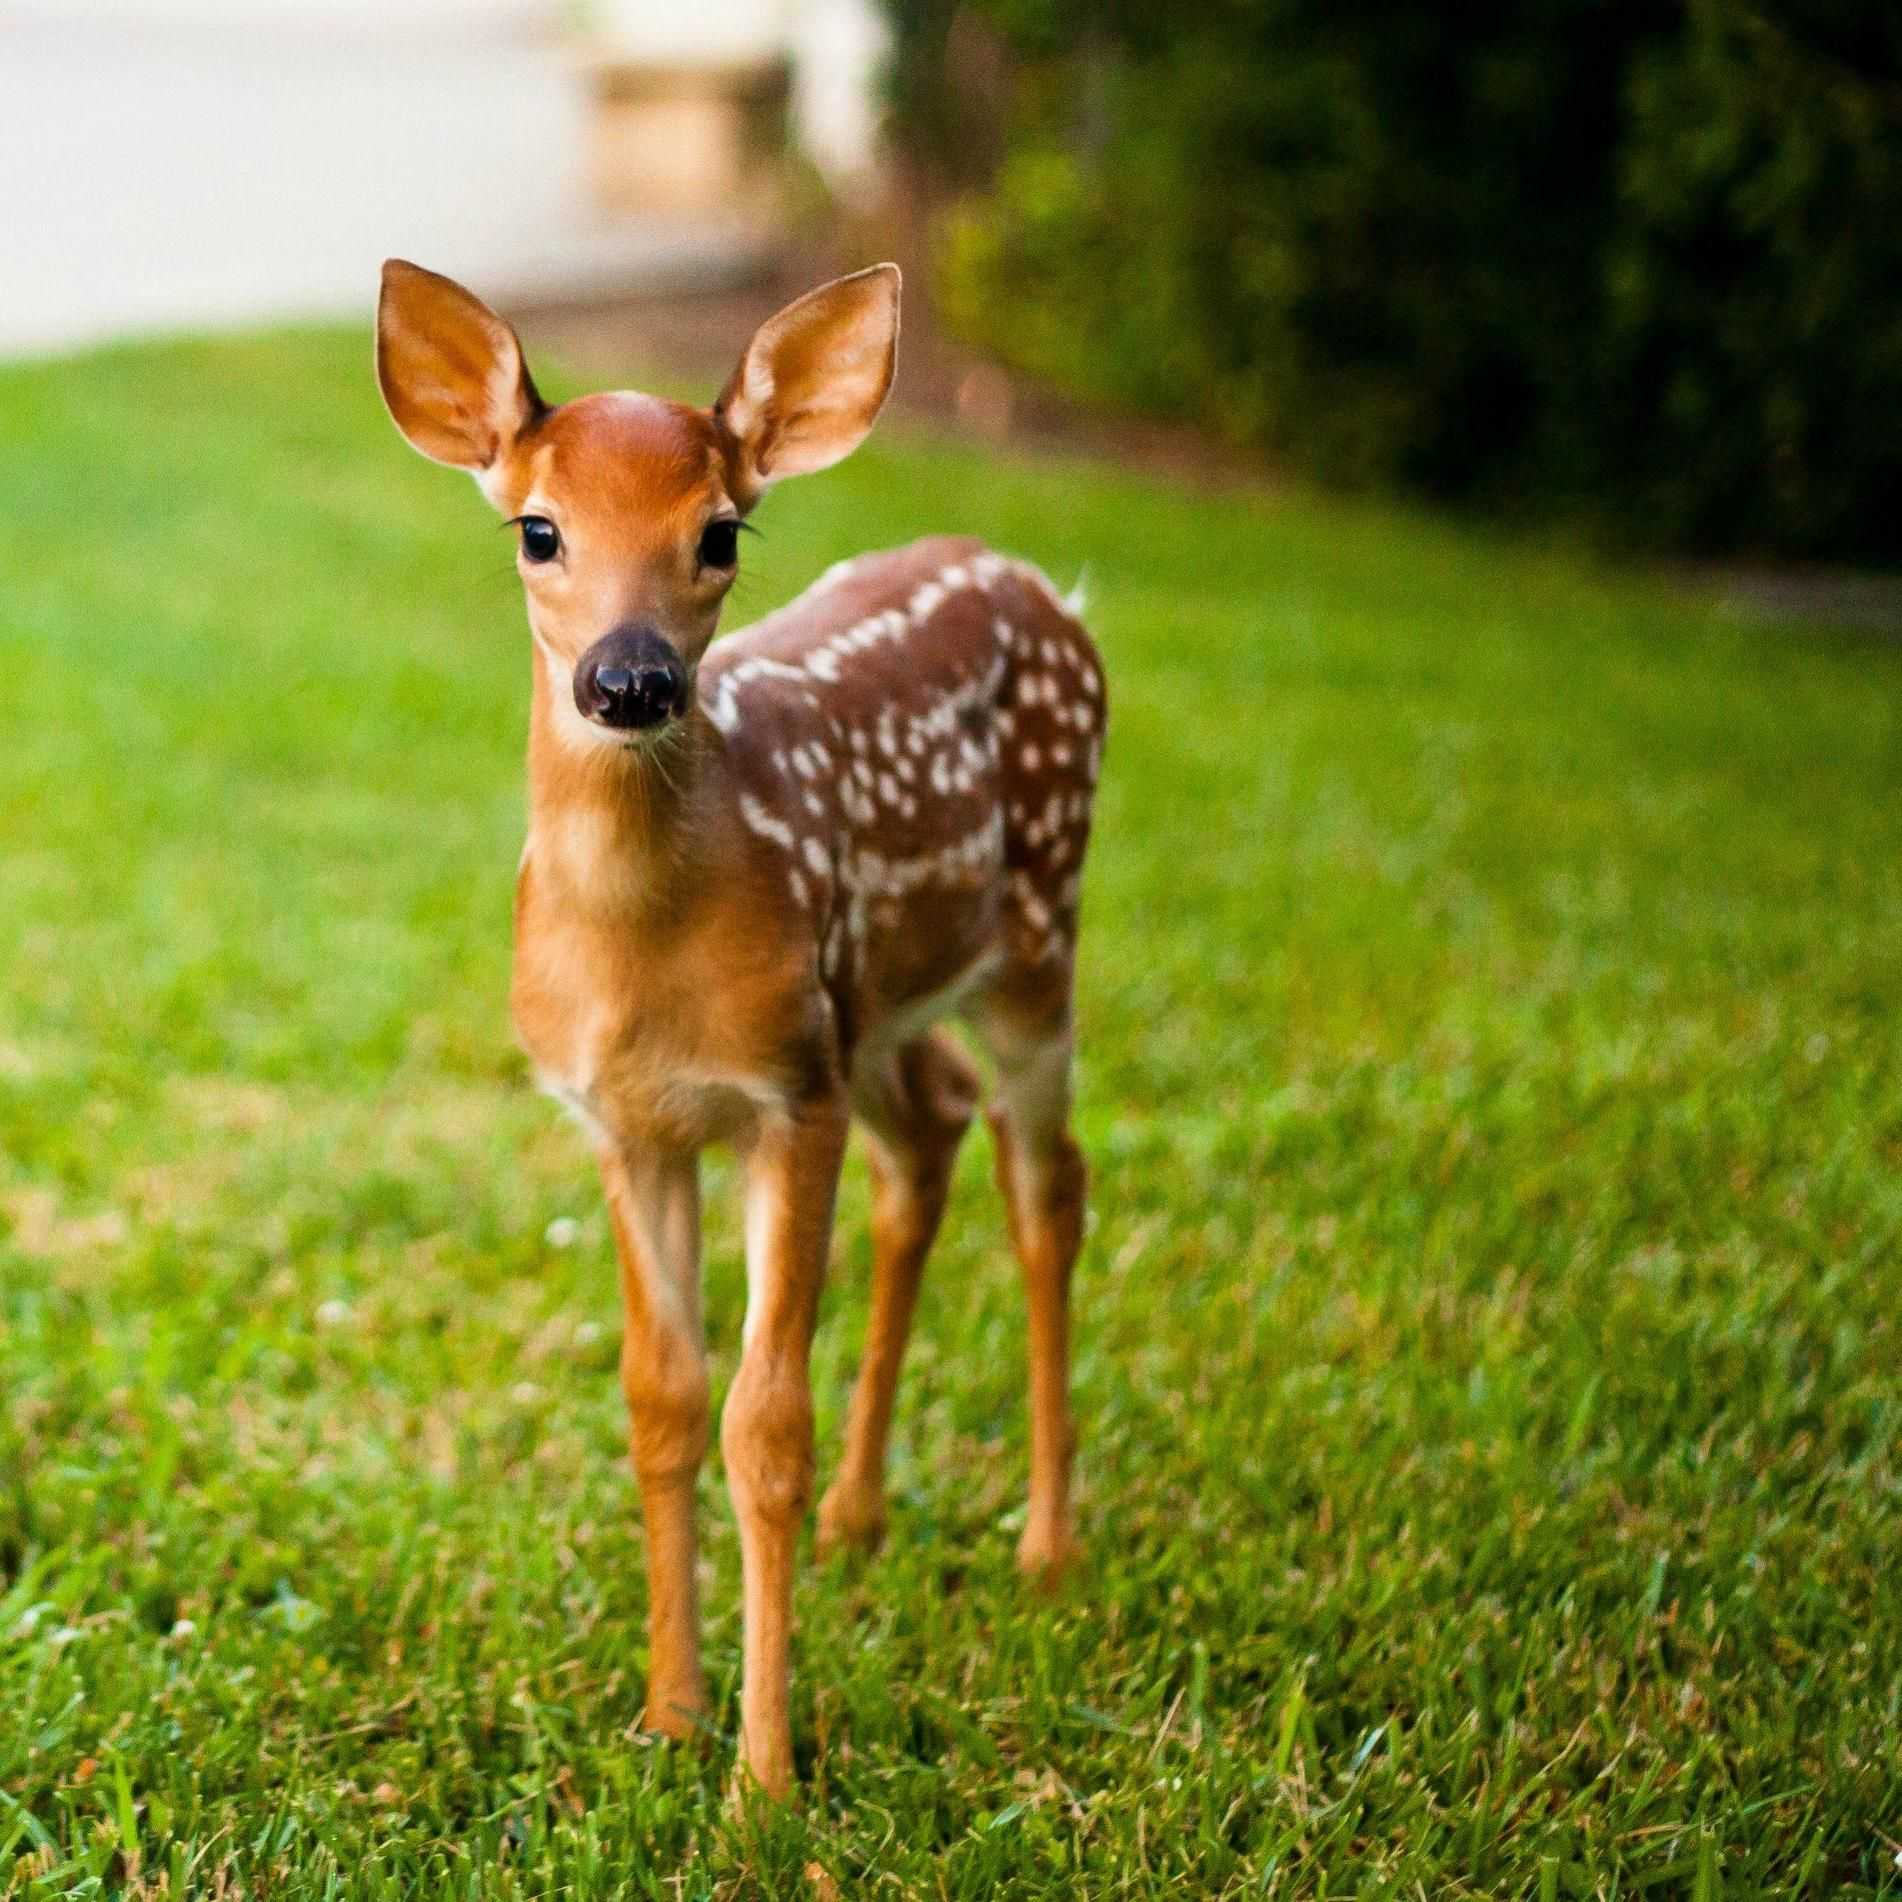 A deer faw … | baby deer | Pinterest | Animal, Baby animals and ...